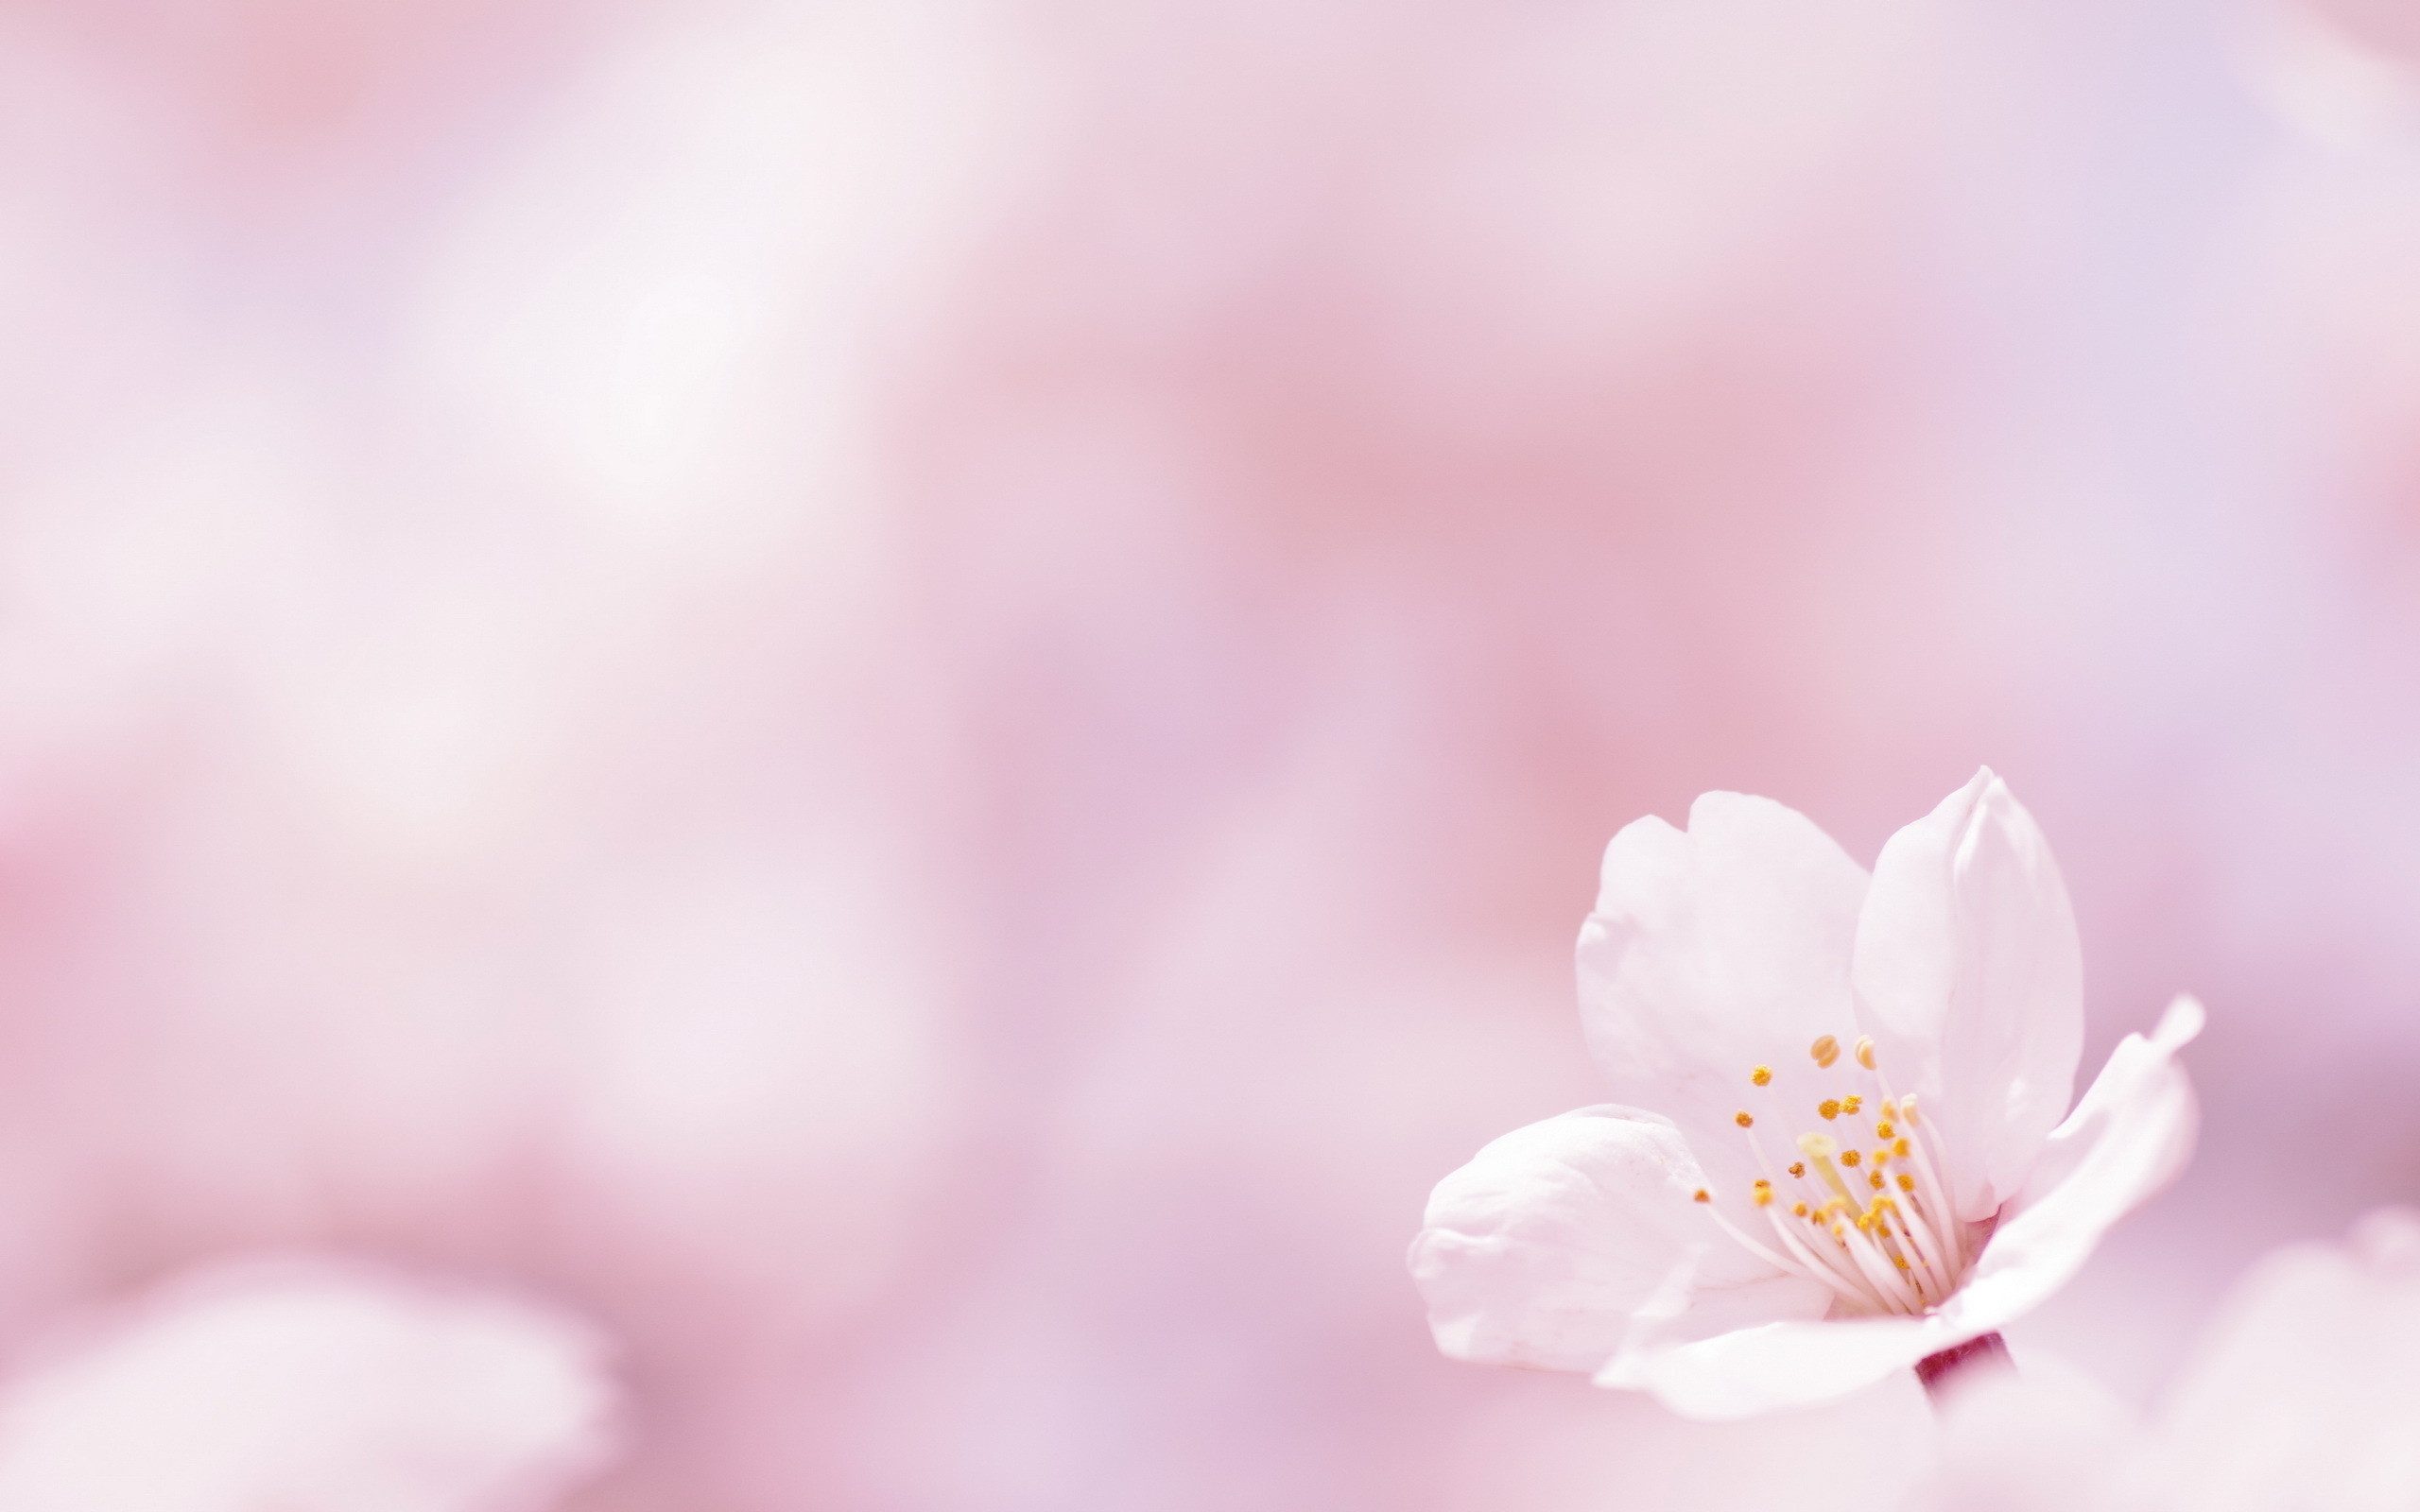 Spring Background Images 55 Images